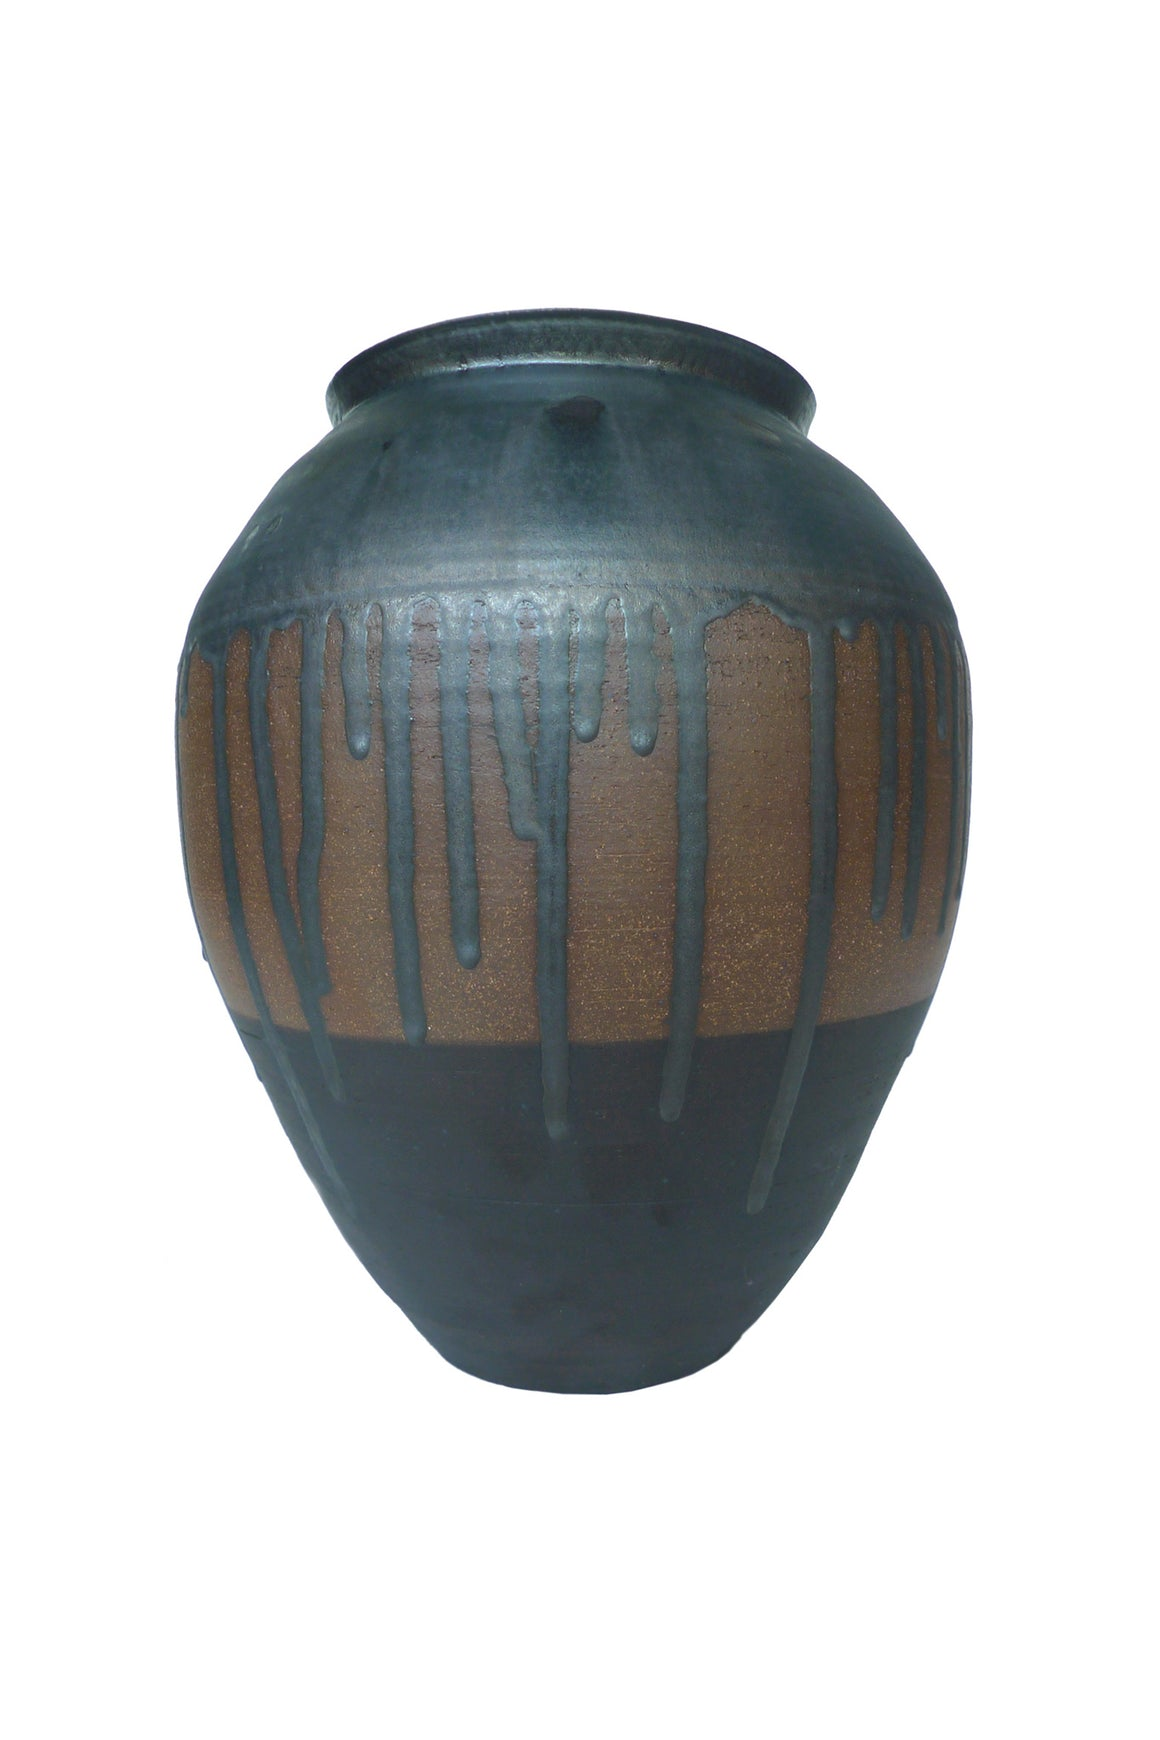 Thom Lussier Metallic Black Glazed Ceramic Urn